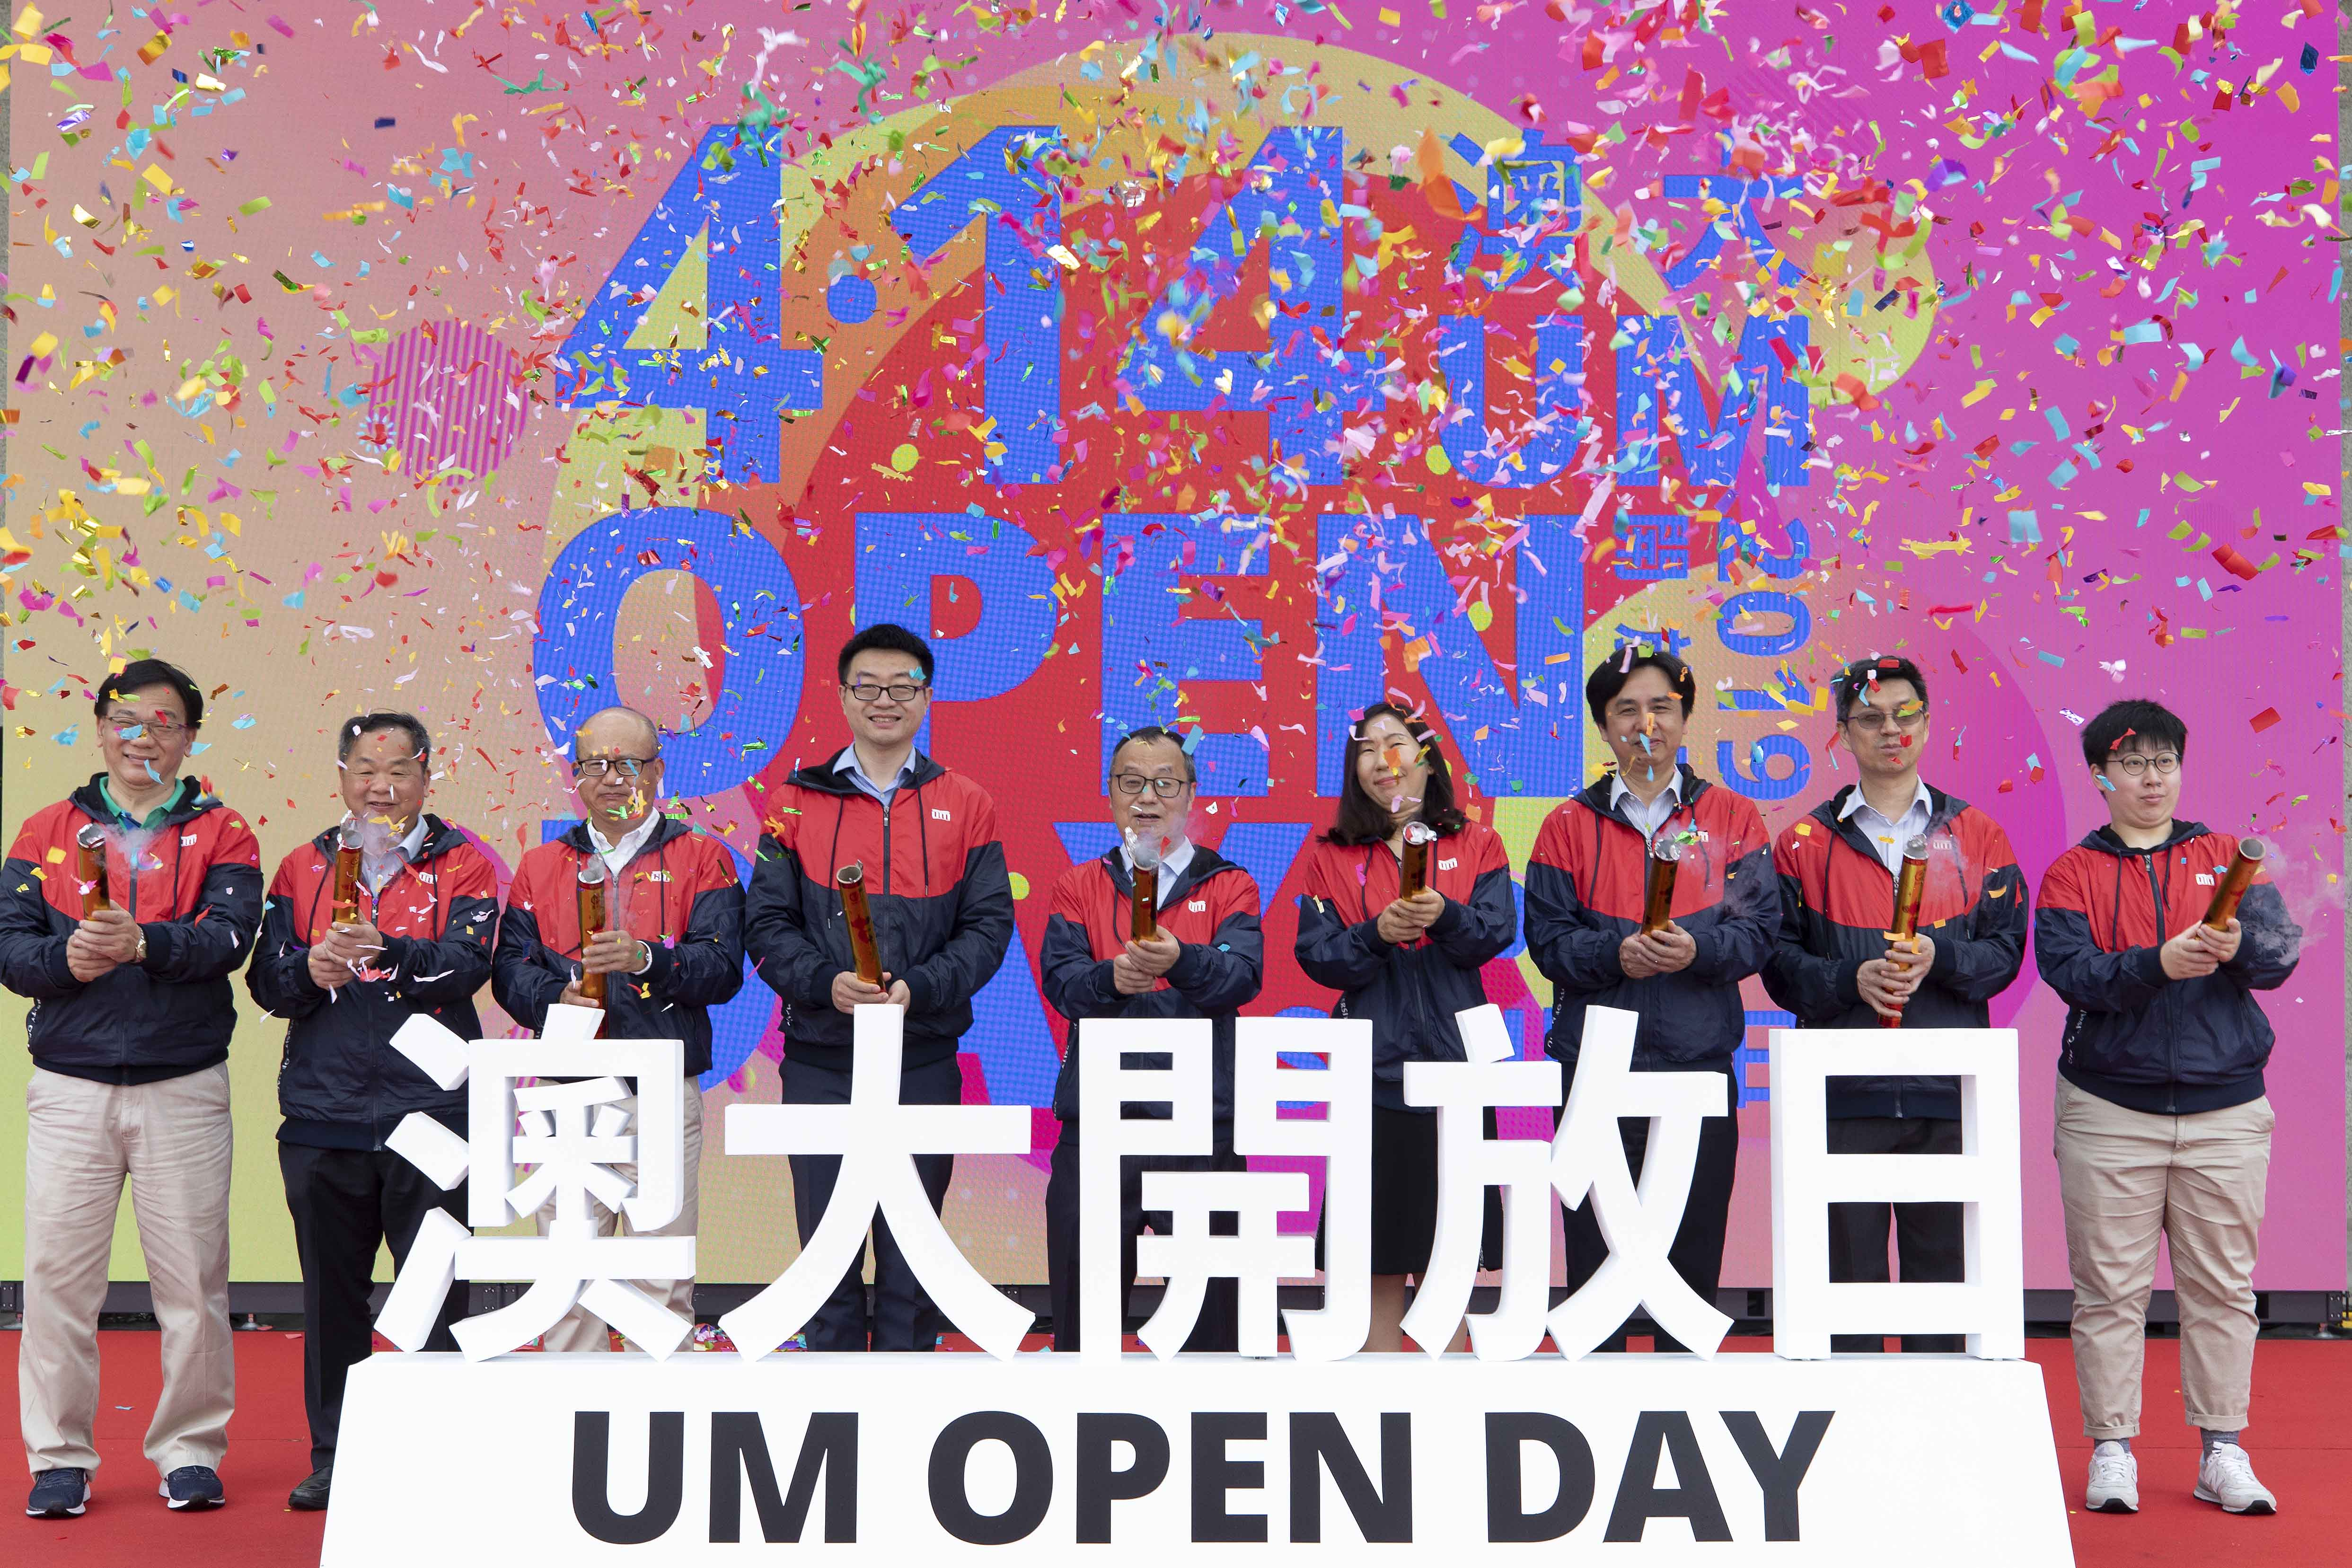 The opening ceremony for the UM Open Day